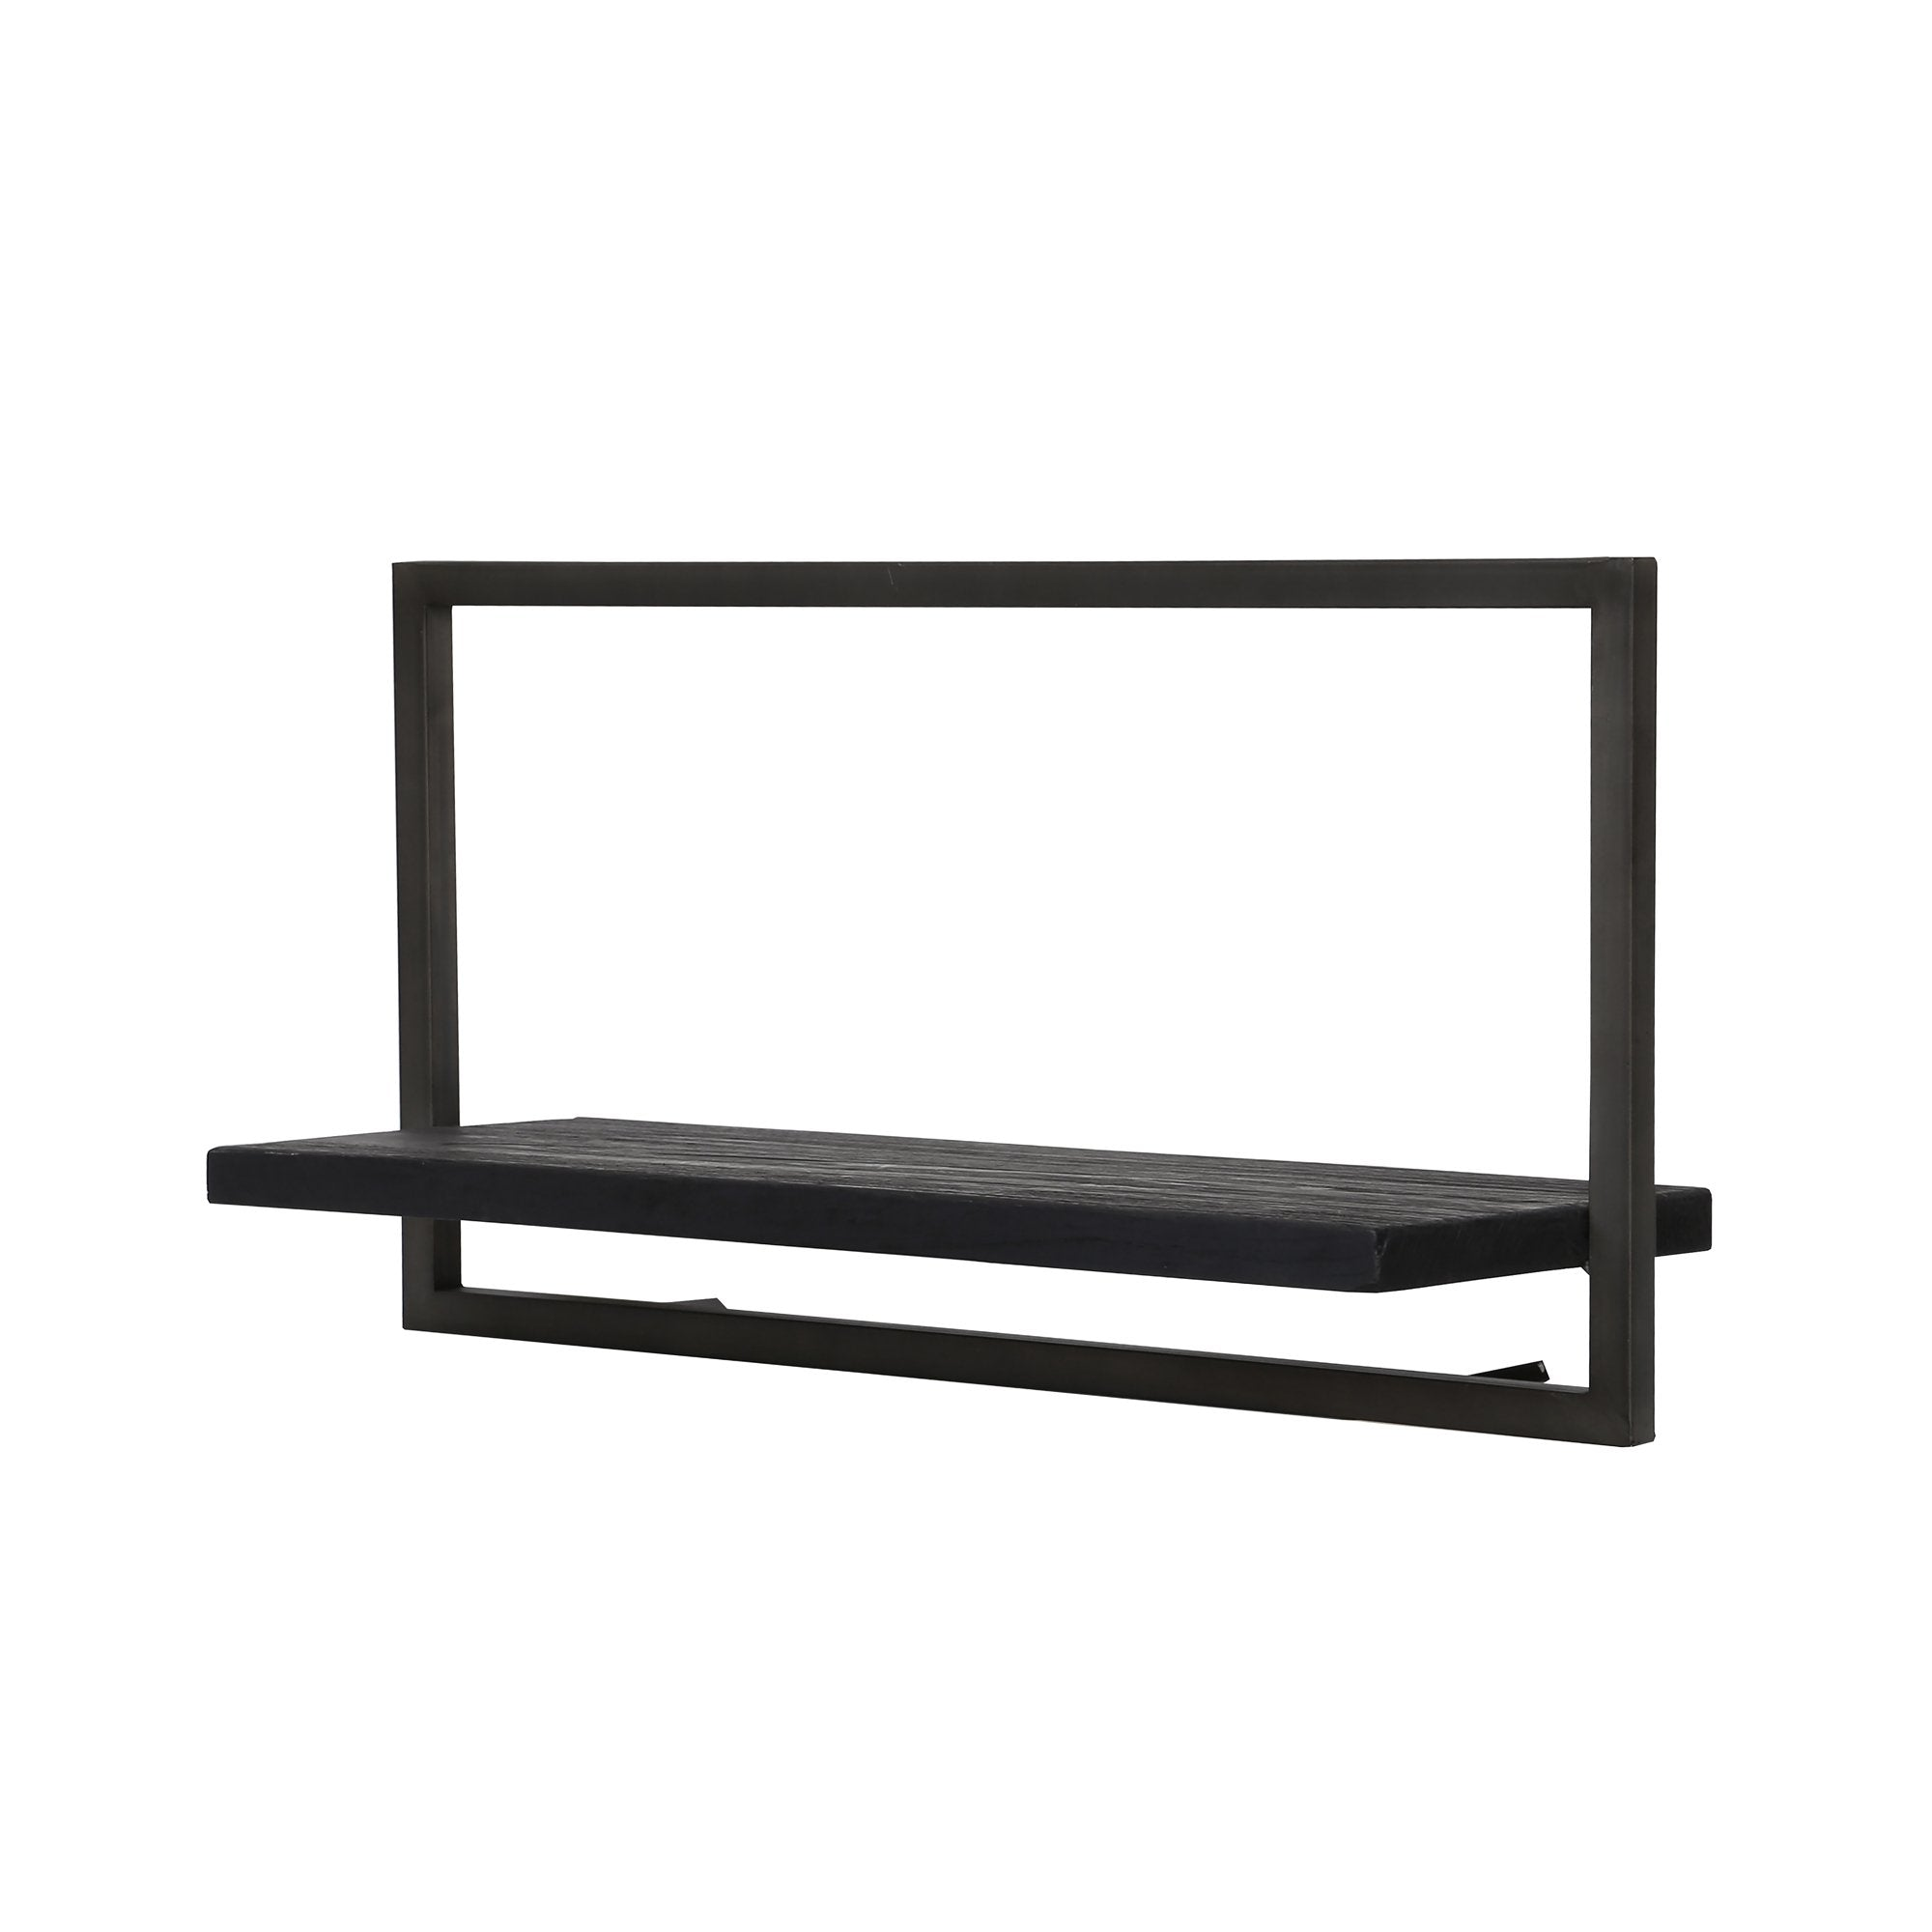 Picture of D-Bodhi Metal Frame Wall Box - Black Type A